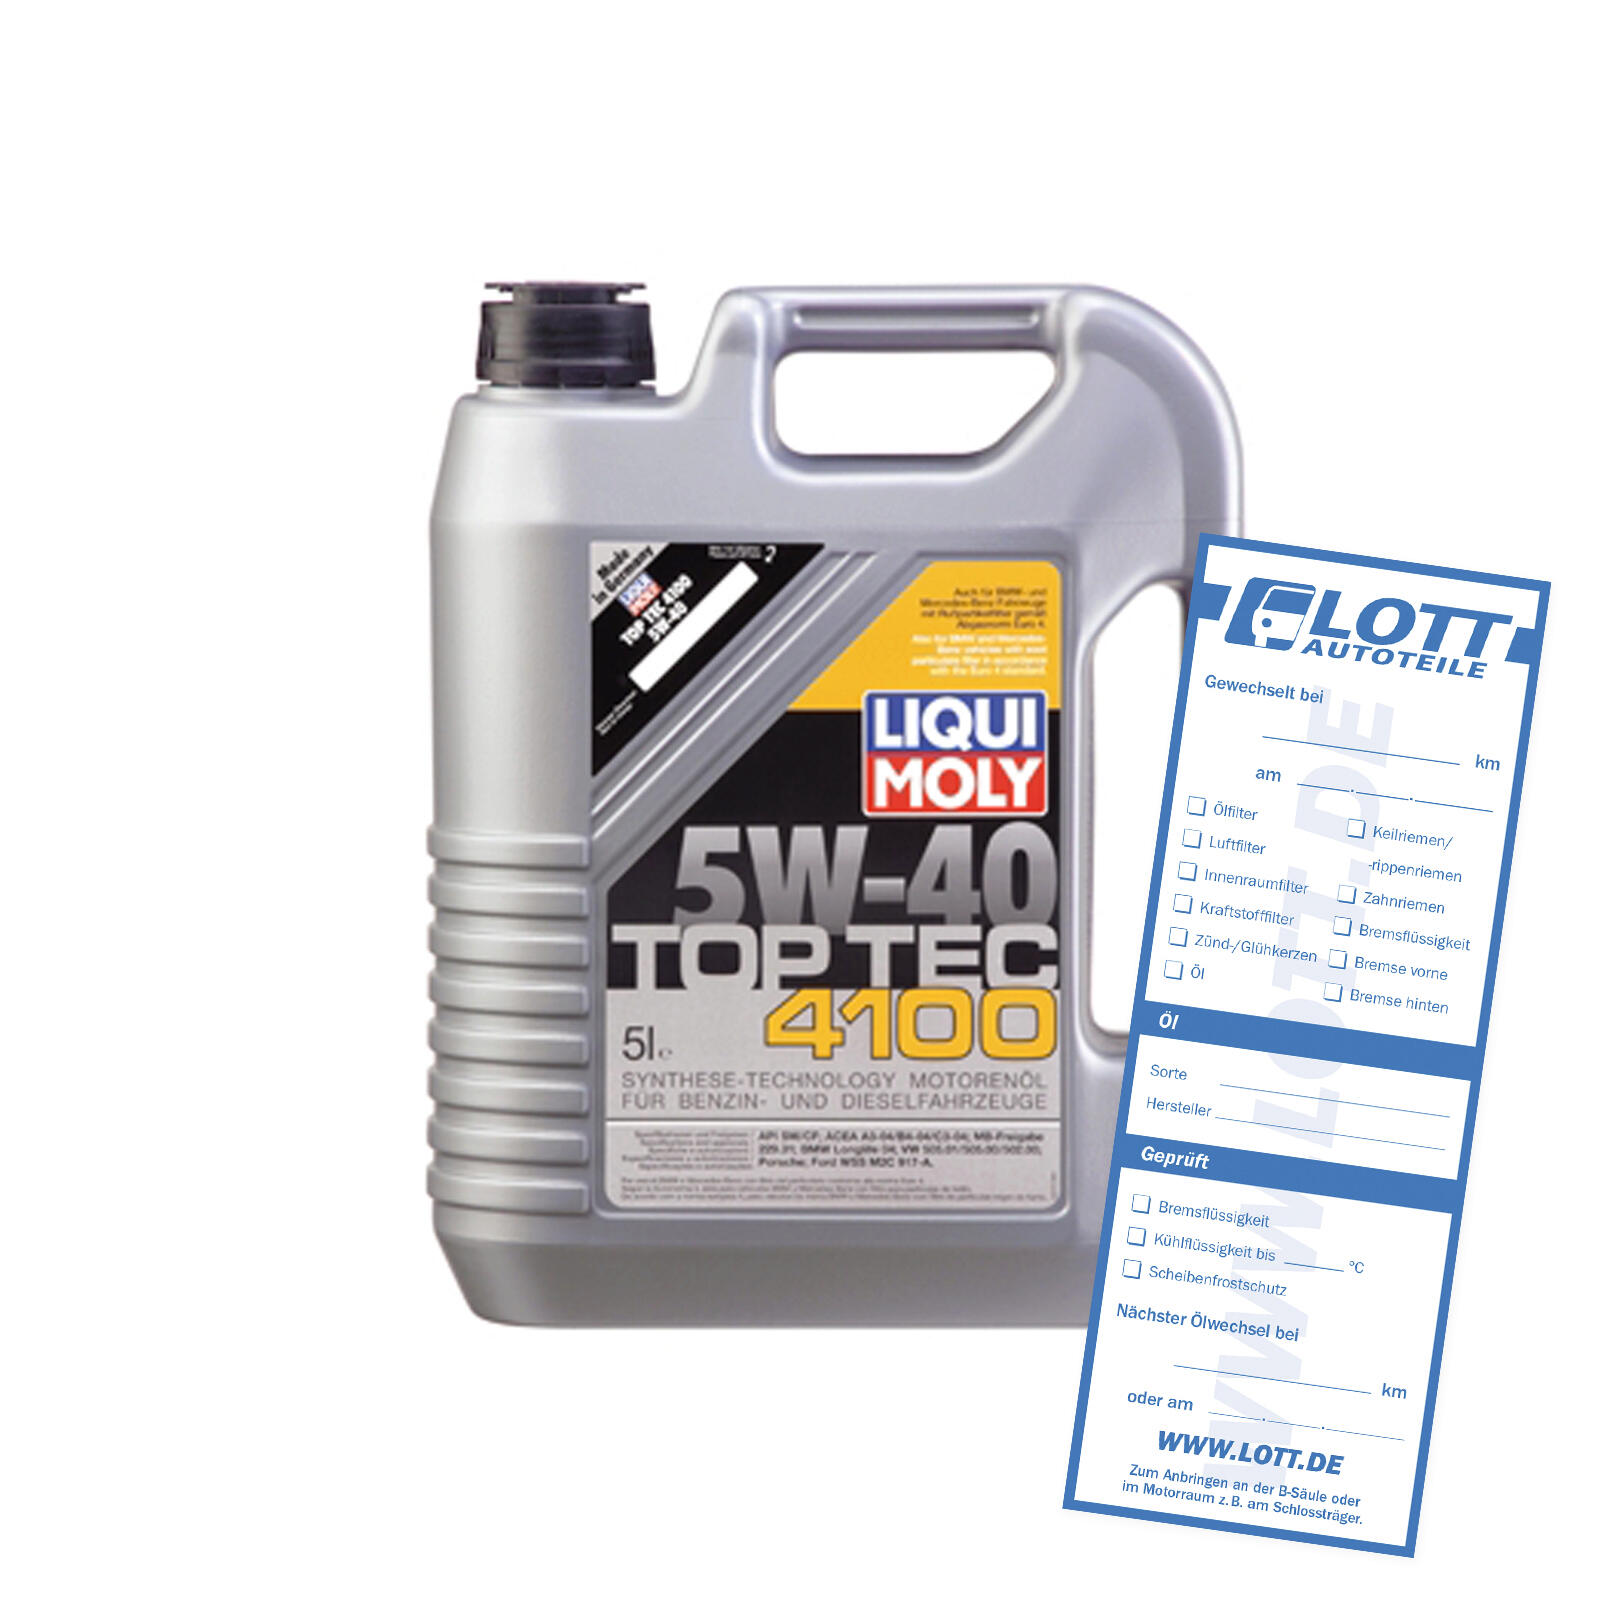 LIQUI MOLY Engine Oil Top Tec 4100 5W-40